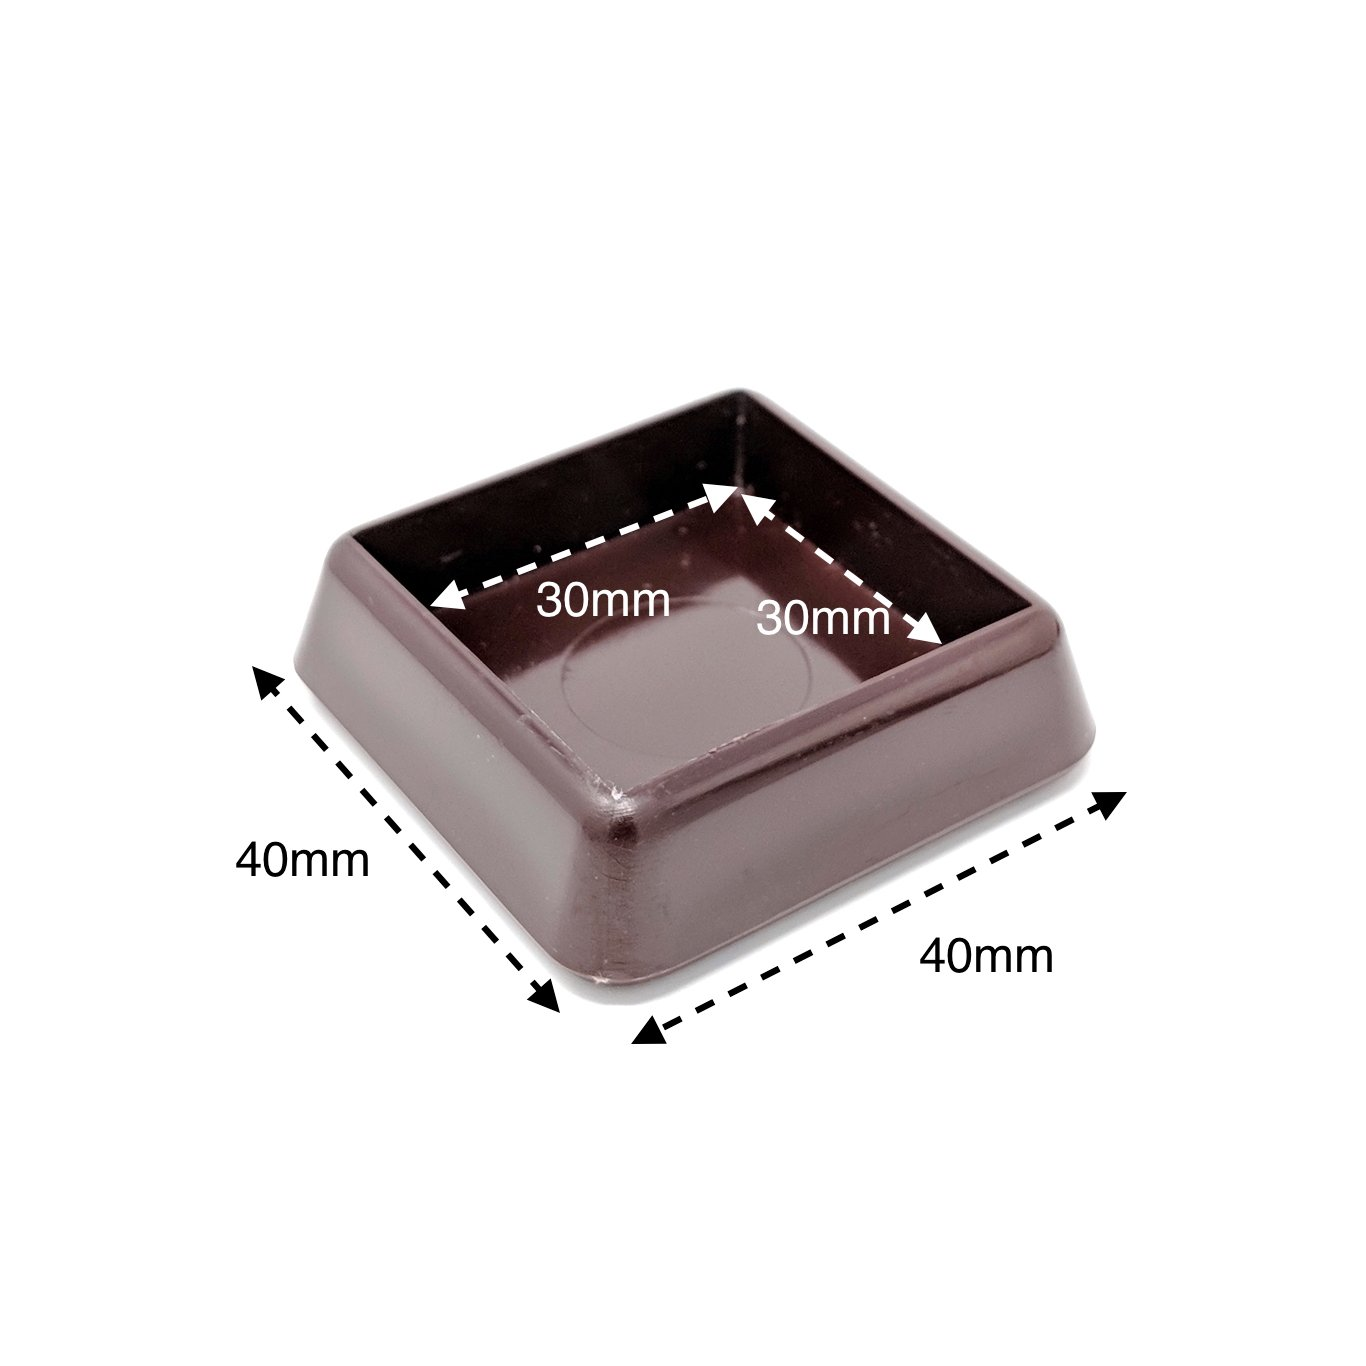 Clear-Inside 50x50mm- Outside 60x60mm- See 2nd Image for Dimensions Pack of 12 Square Castor Cups -Not Suitable for Metal Castors,Please Make Sure Weight is distributed evenly.Made in Germany